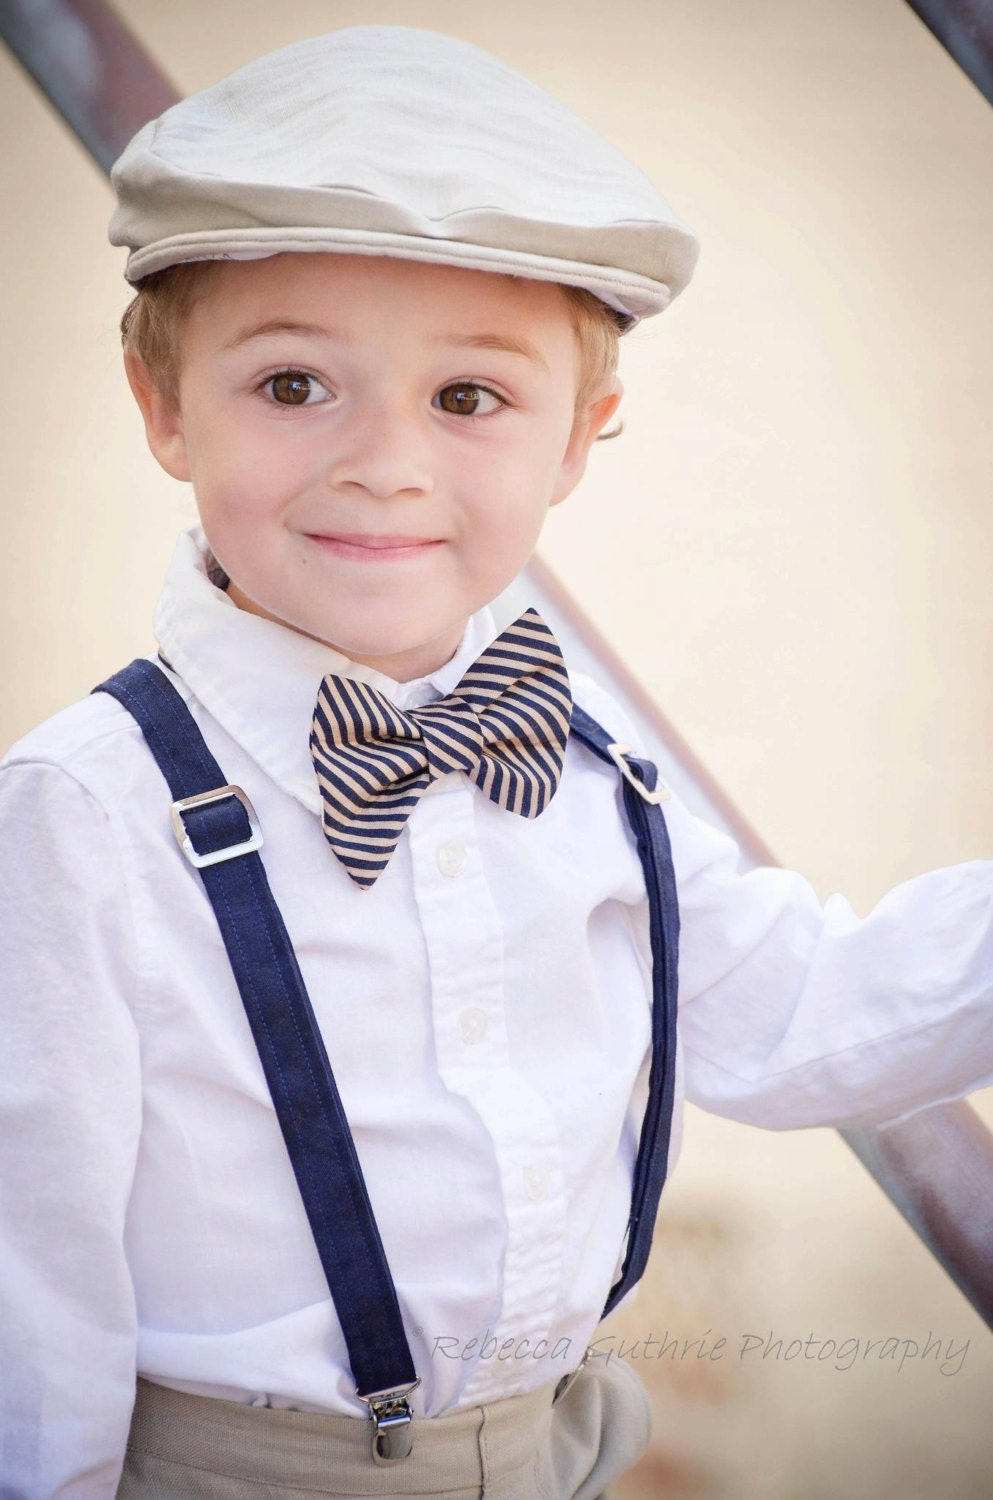 IK- Kids New Design Suspenders and Bowtie Bow Tie Set Matching Ties Outfit New. $ Buy It Now. Free Shipping. + Sold. SPONSORED. Toddler Kids Boys Girls Baby Suspenders and Bow Tie Matching Set Wedding. Brand New. $ Buy It Now. Free Shipping. Suspender and Bow Tie gold Baby Toddler Kids Boys Girls Child SETS USA seller 3.